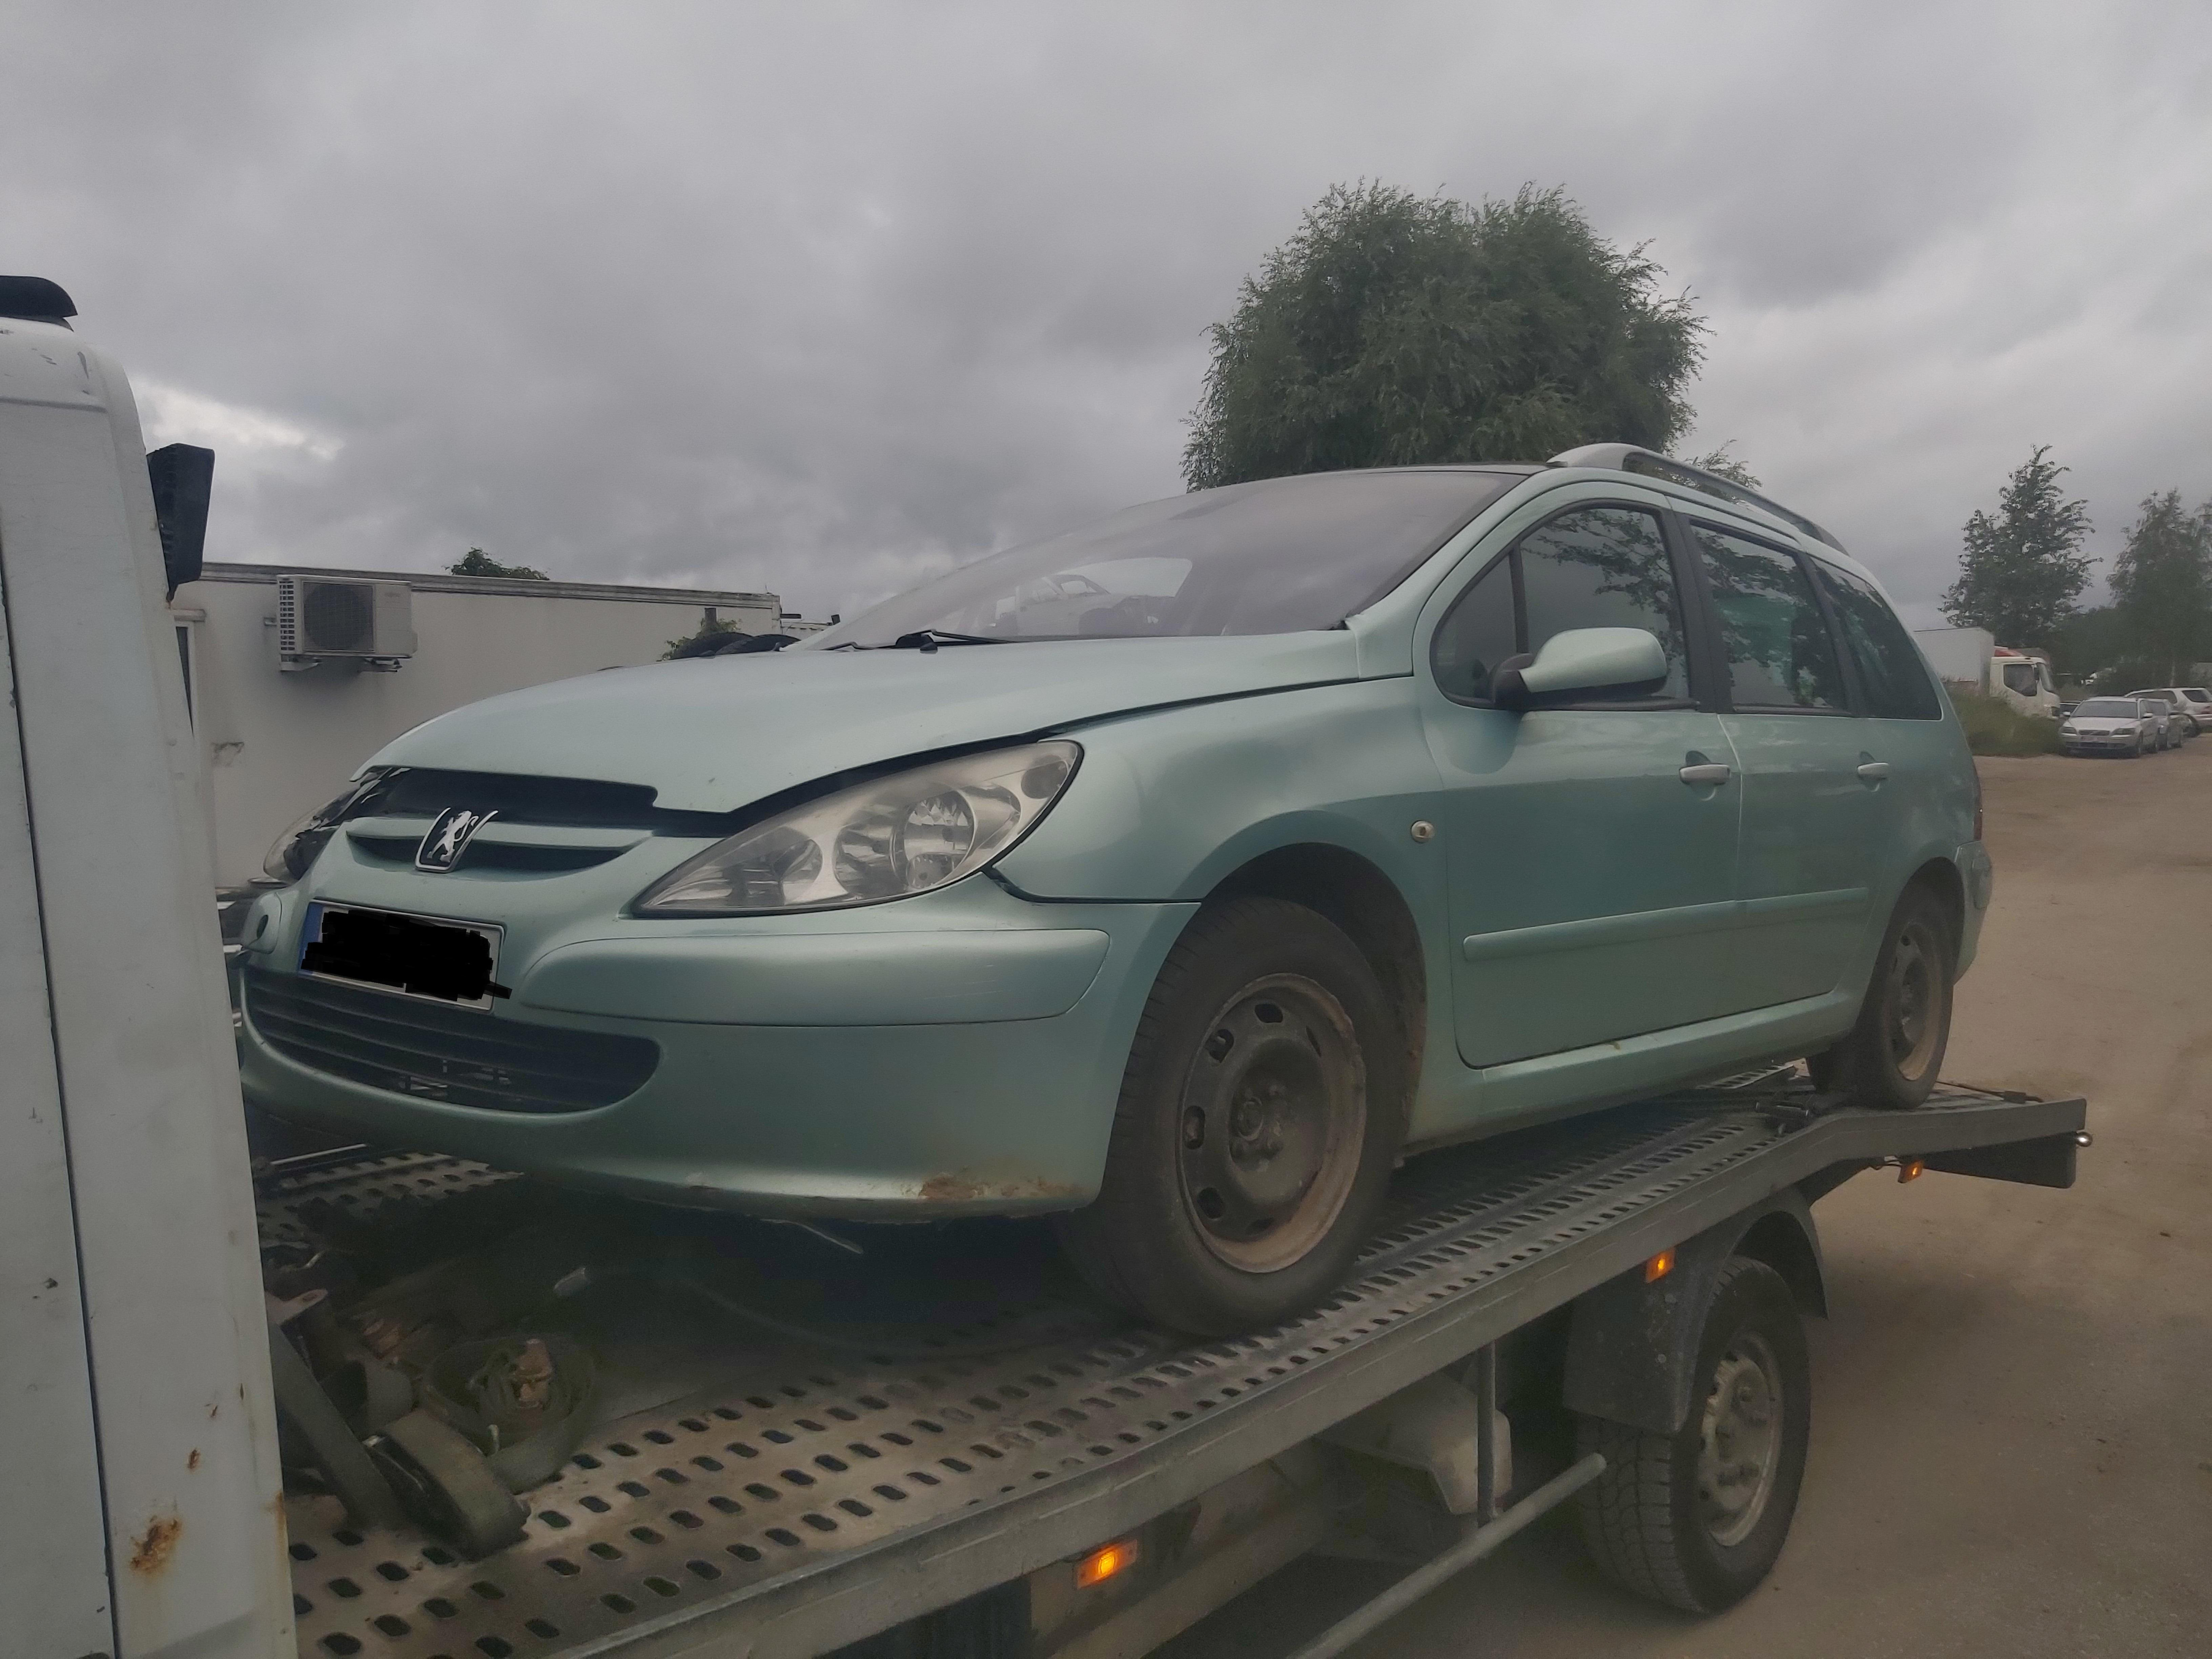 Used Car Parts Foto 4 Peugeot 307 2003 2.0 Mechanical Universal 4/5 d. Green 2020-7-30 A5478